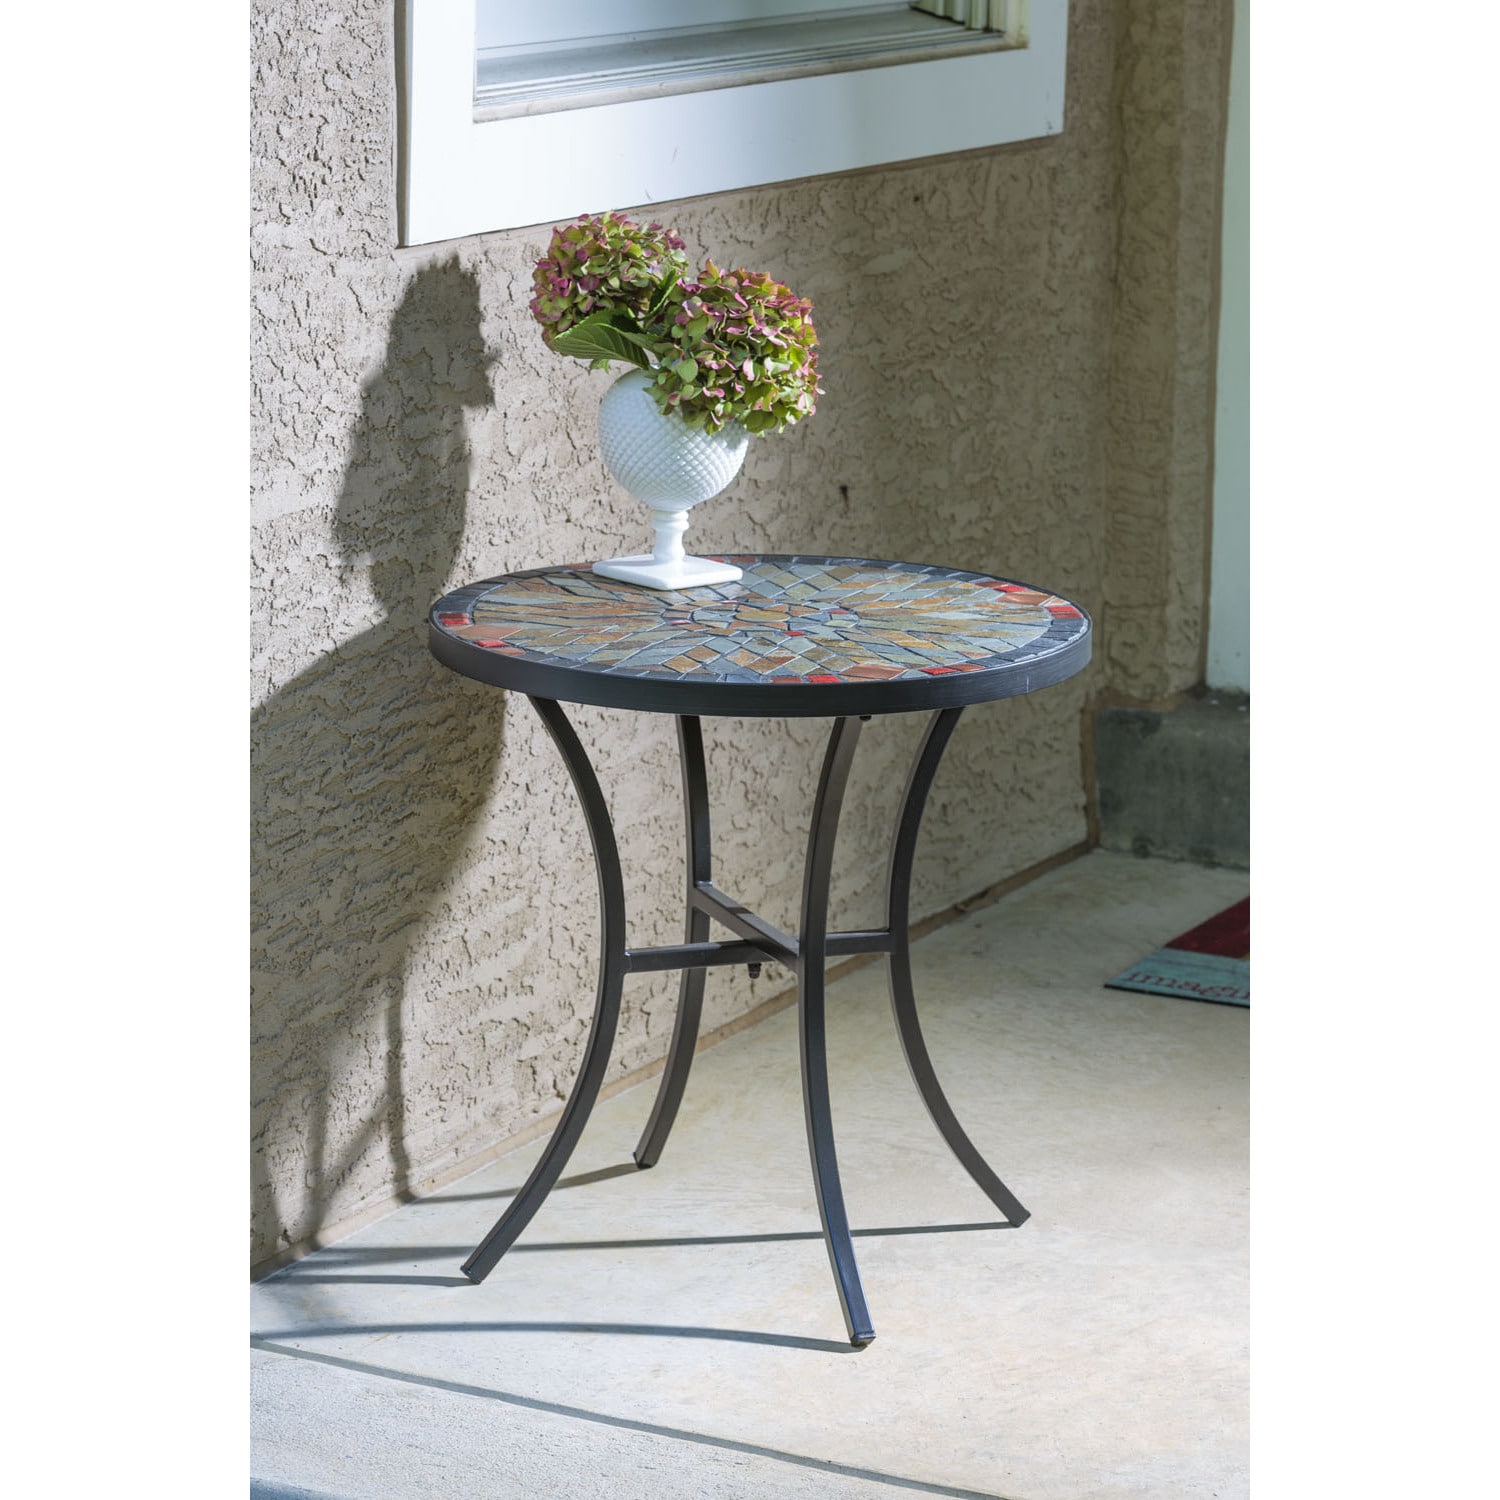 Sagrada Ceramic 20 Inch Round Mosaic Outdoor Side Table With Tile Top And Base On Free Shipping Today 14398513